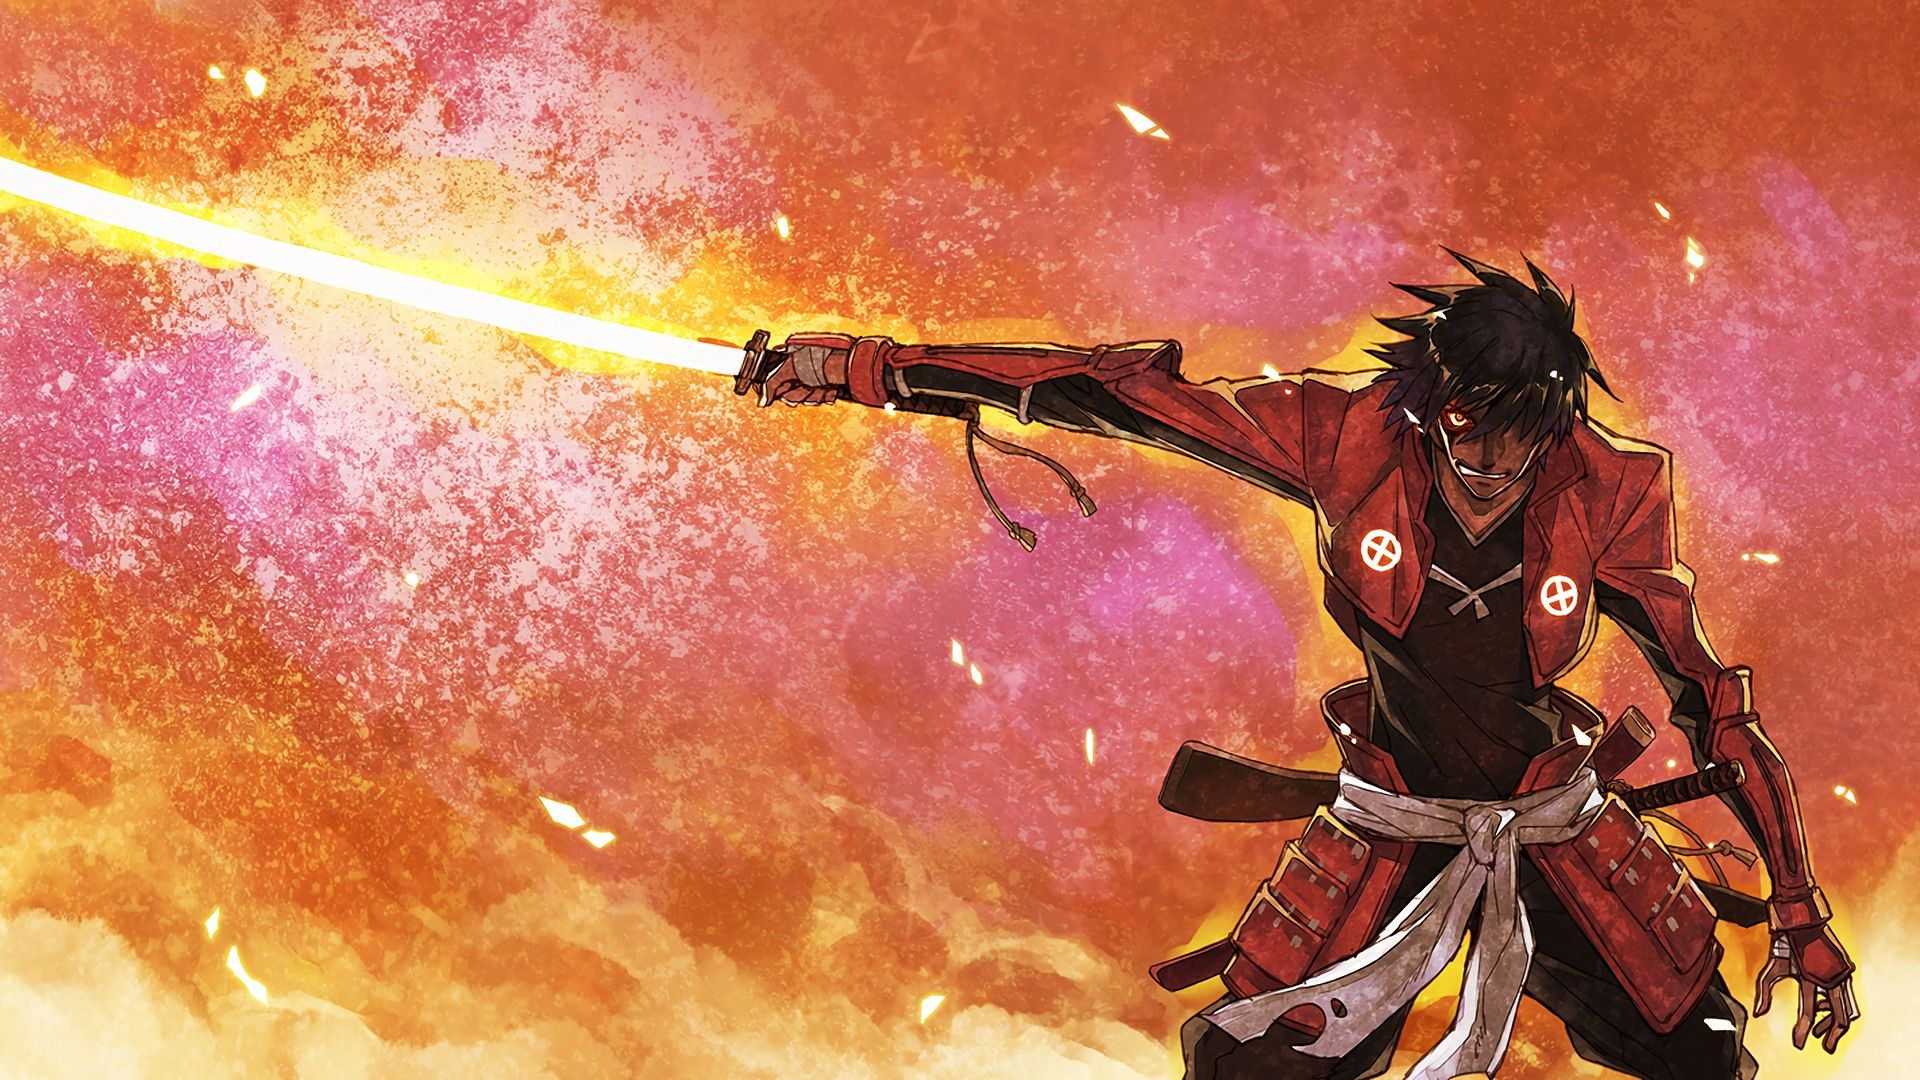 Drifters (With images) Samurai anime, Love animation